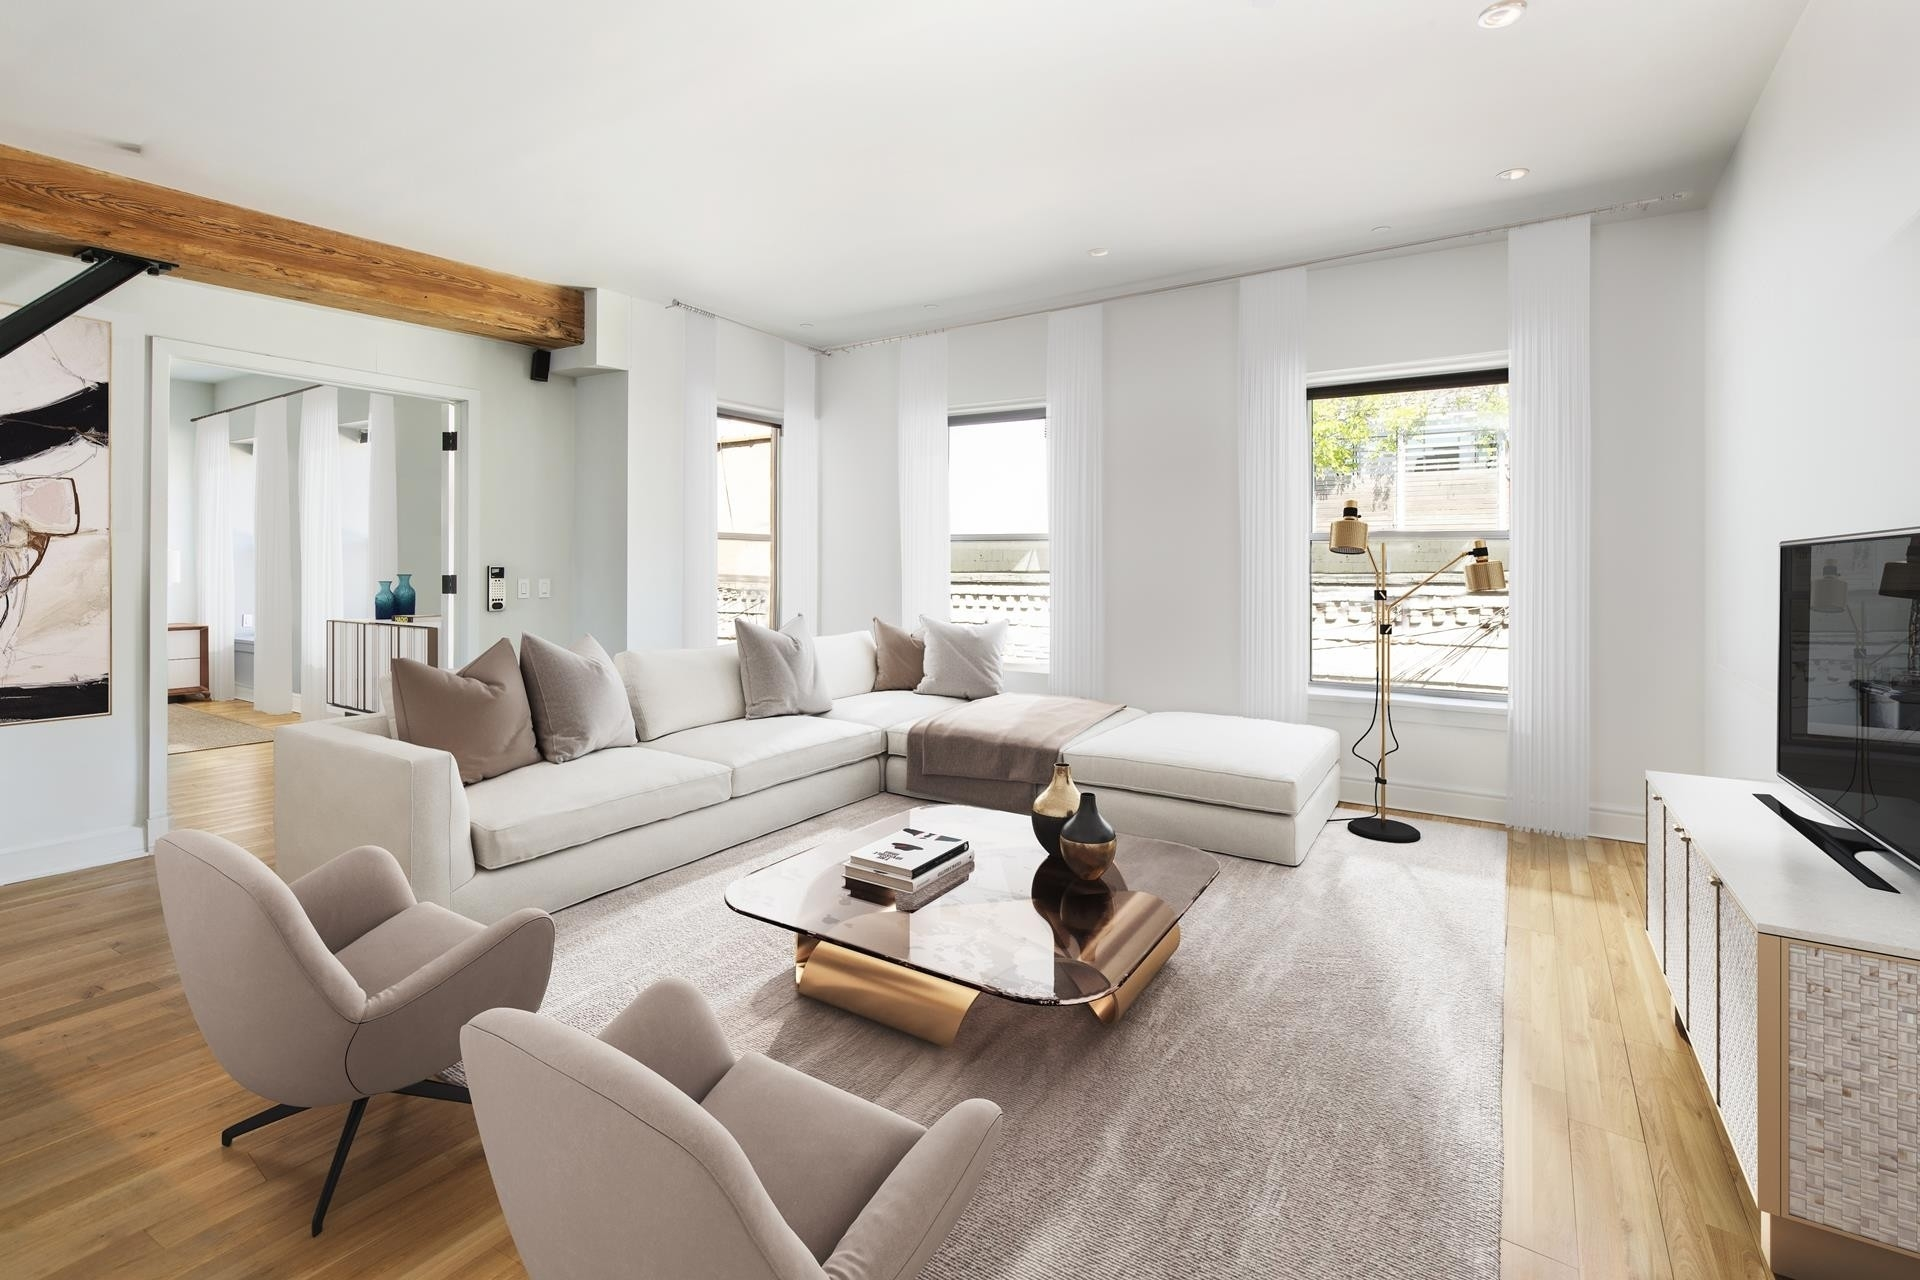 8. Condominiums for Sale at Spice Warehouse, 481 WASHINGTON ST , PHBC Hudson Square, New York, NY 10013